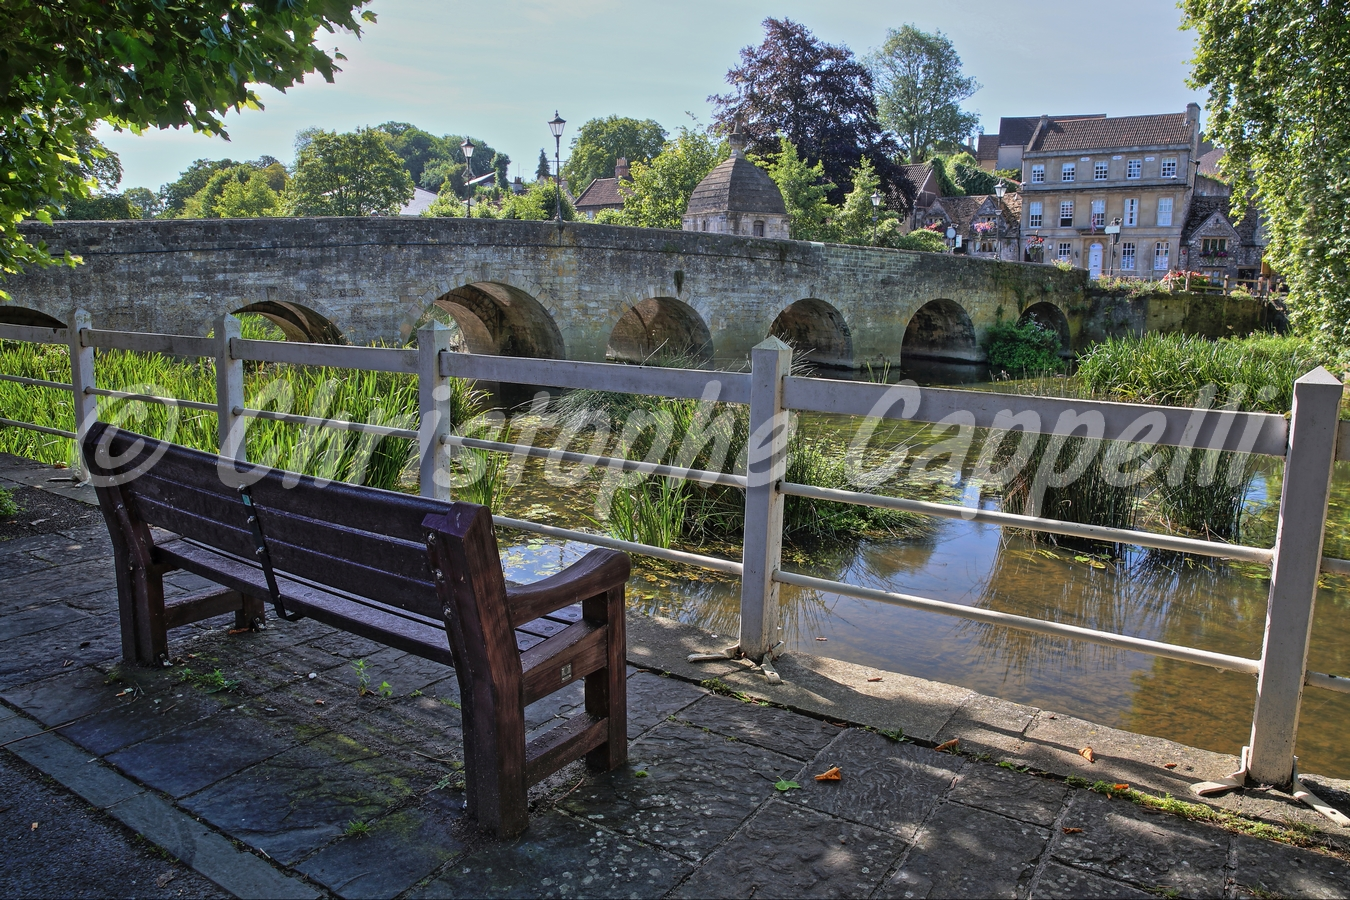 Phenomenal The Old Town Bridge On The River Avon With A Wooden Bench In Pdpeps Interior Chair Design Pdpepsorg